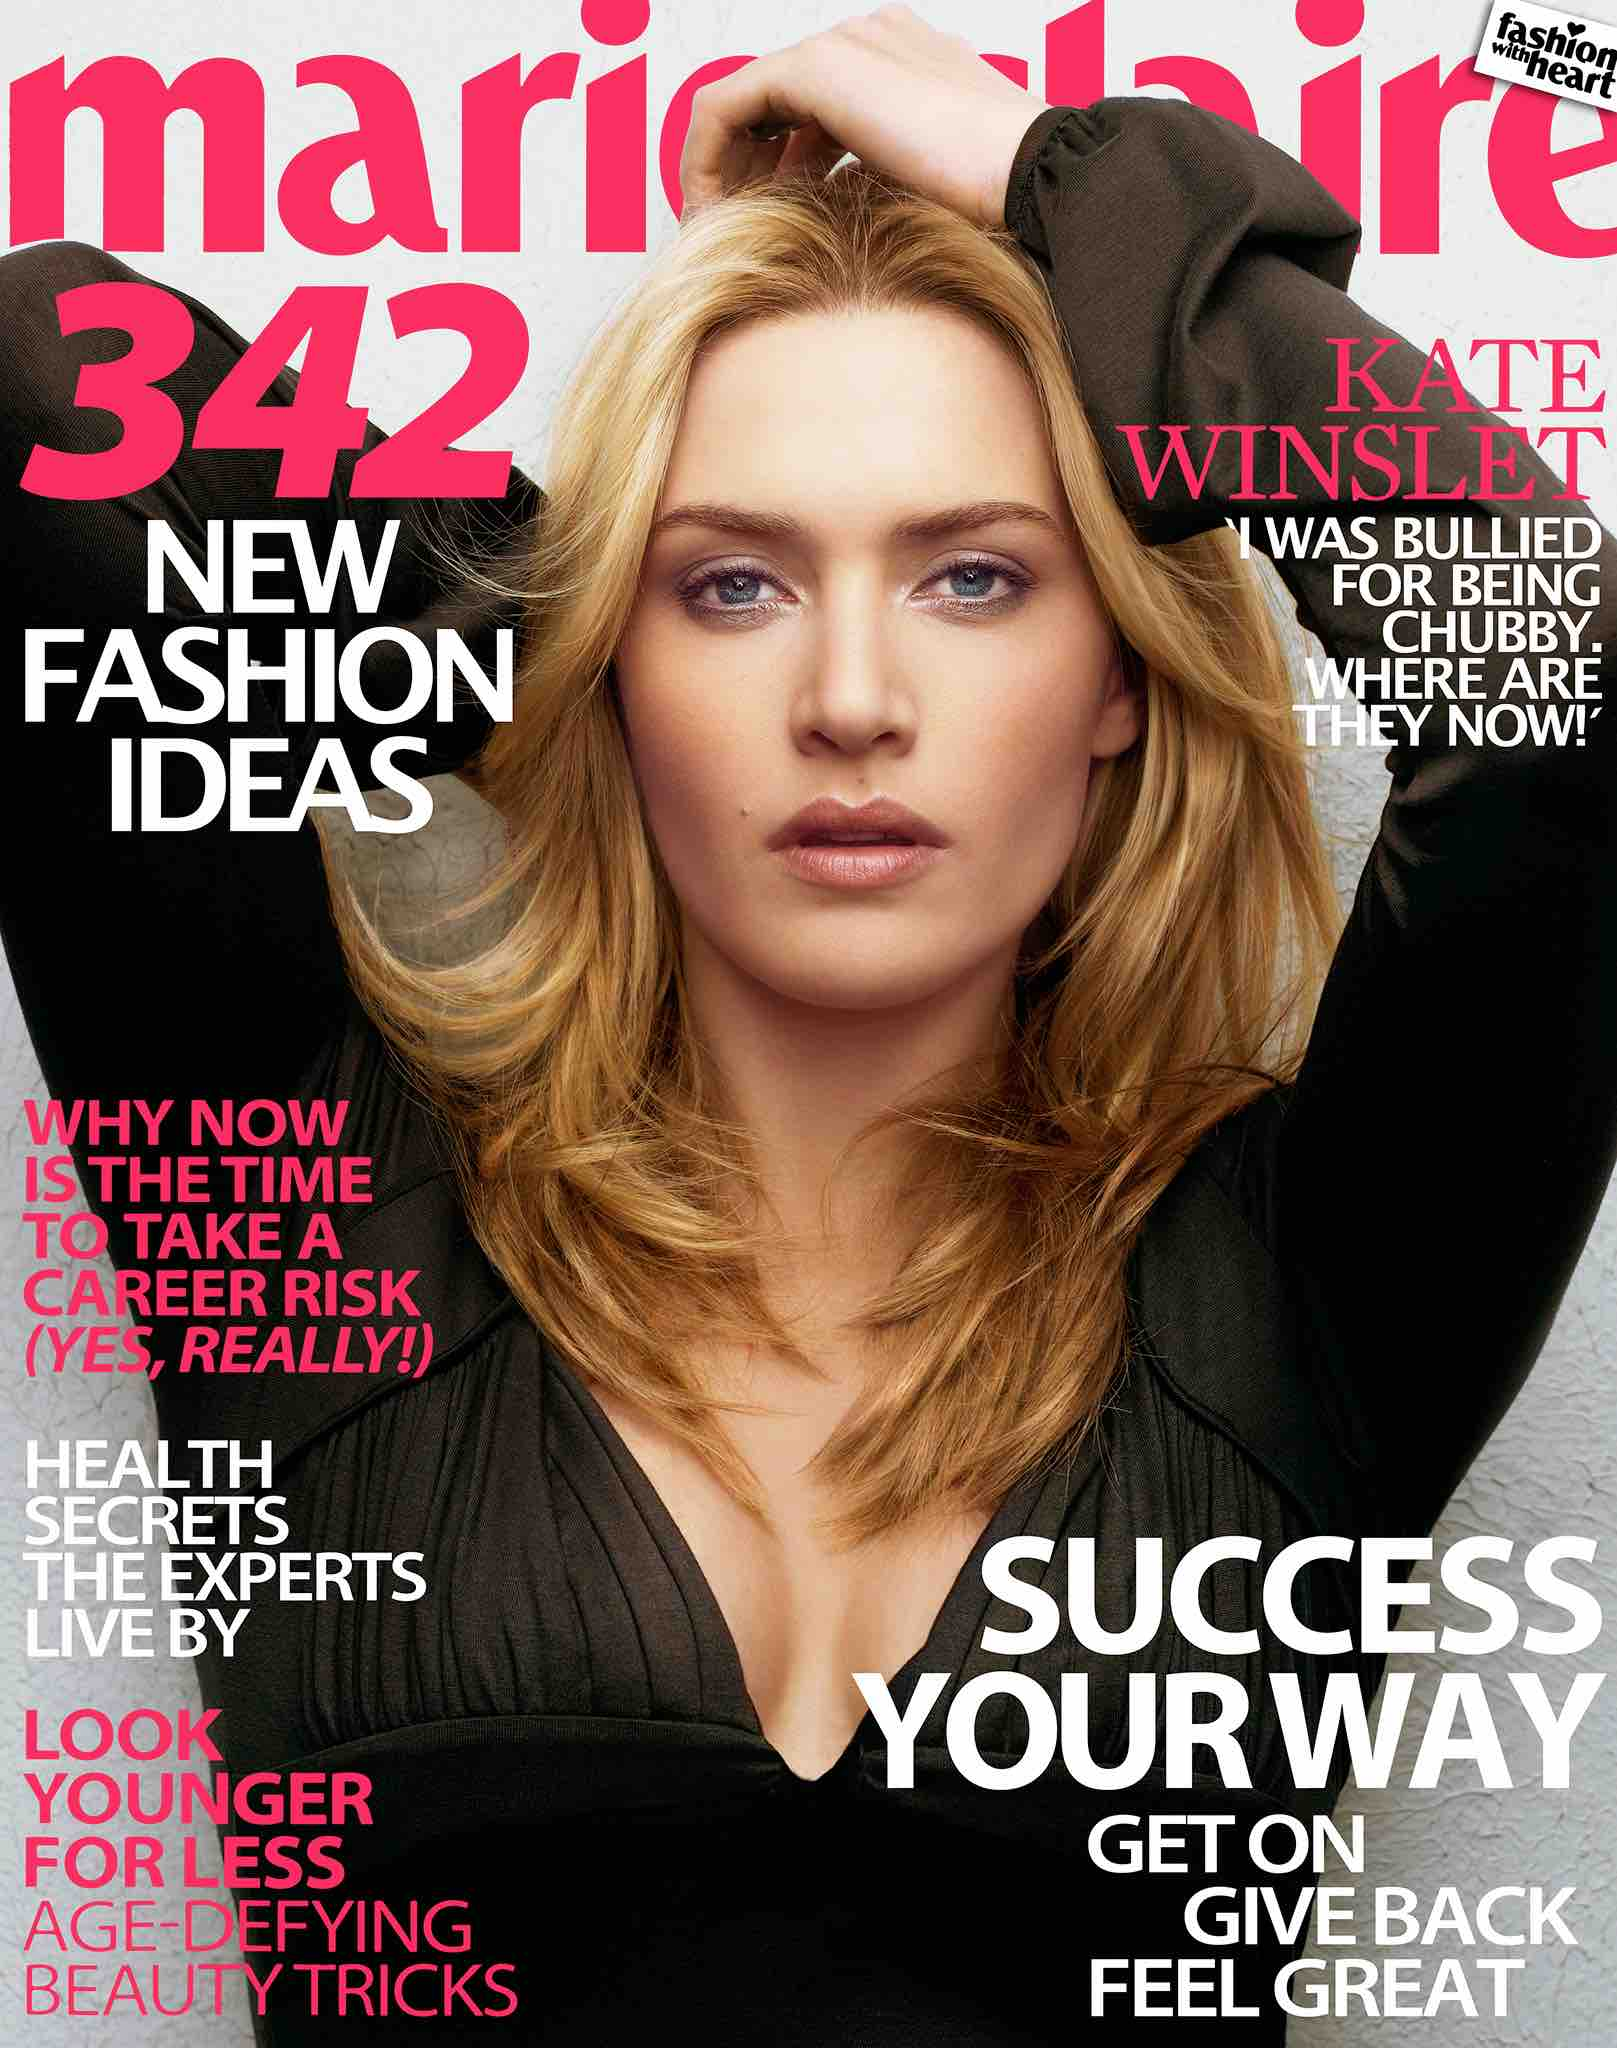 Kate Winslet cover shoot, with a Broncolor Para 330, New York, 2006. (photo by Markus Klinko)